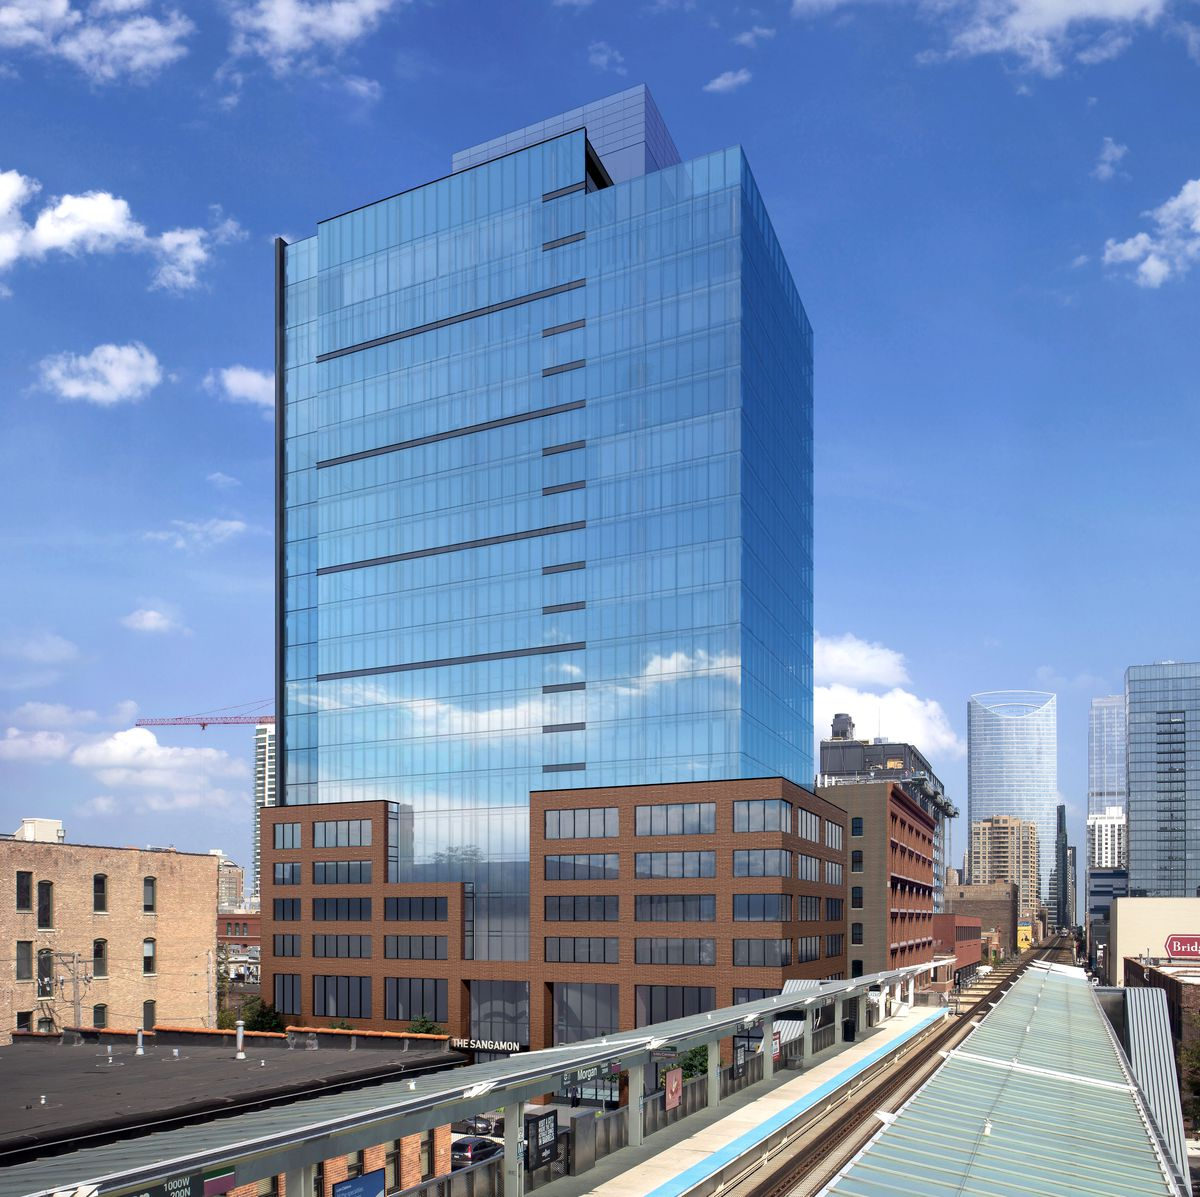 A 20-story rectangular building with a brick base. blue glass upper levels, and stepped roof rises near the Morgan CTA station. The Chicago skyline is visible beyond.